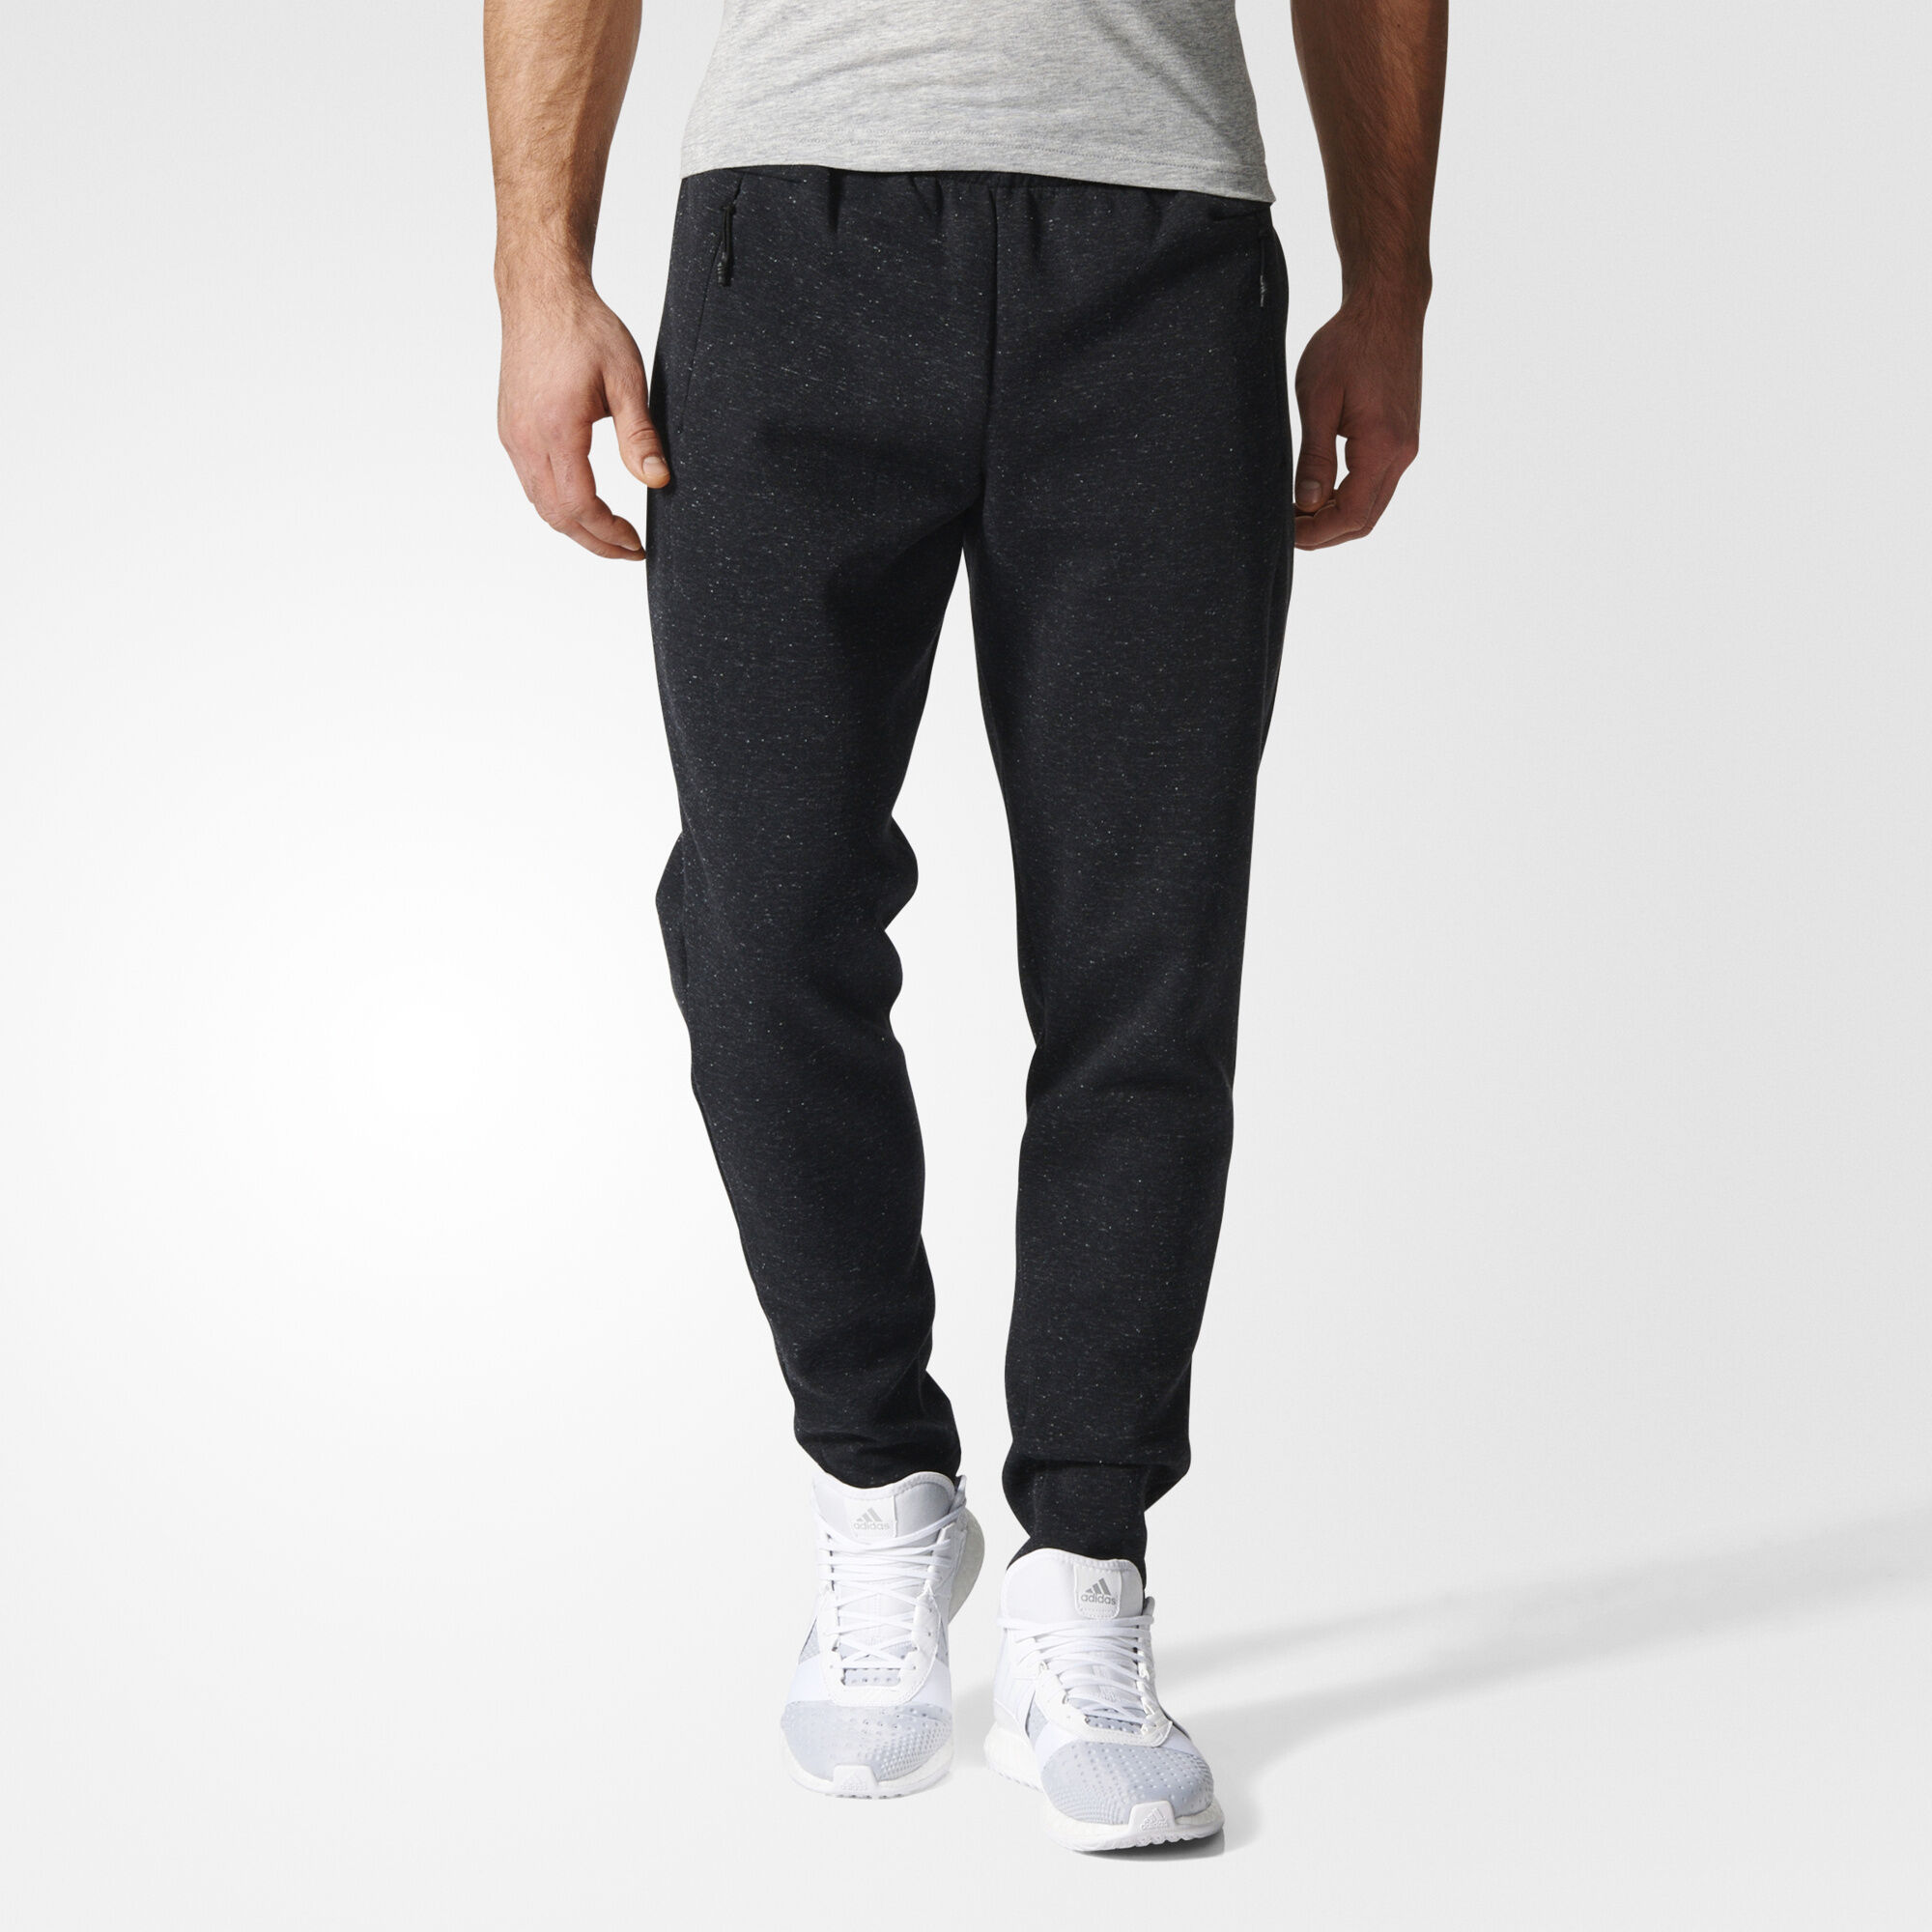 cool adidas trainers pants